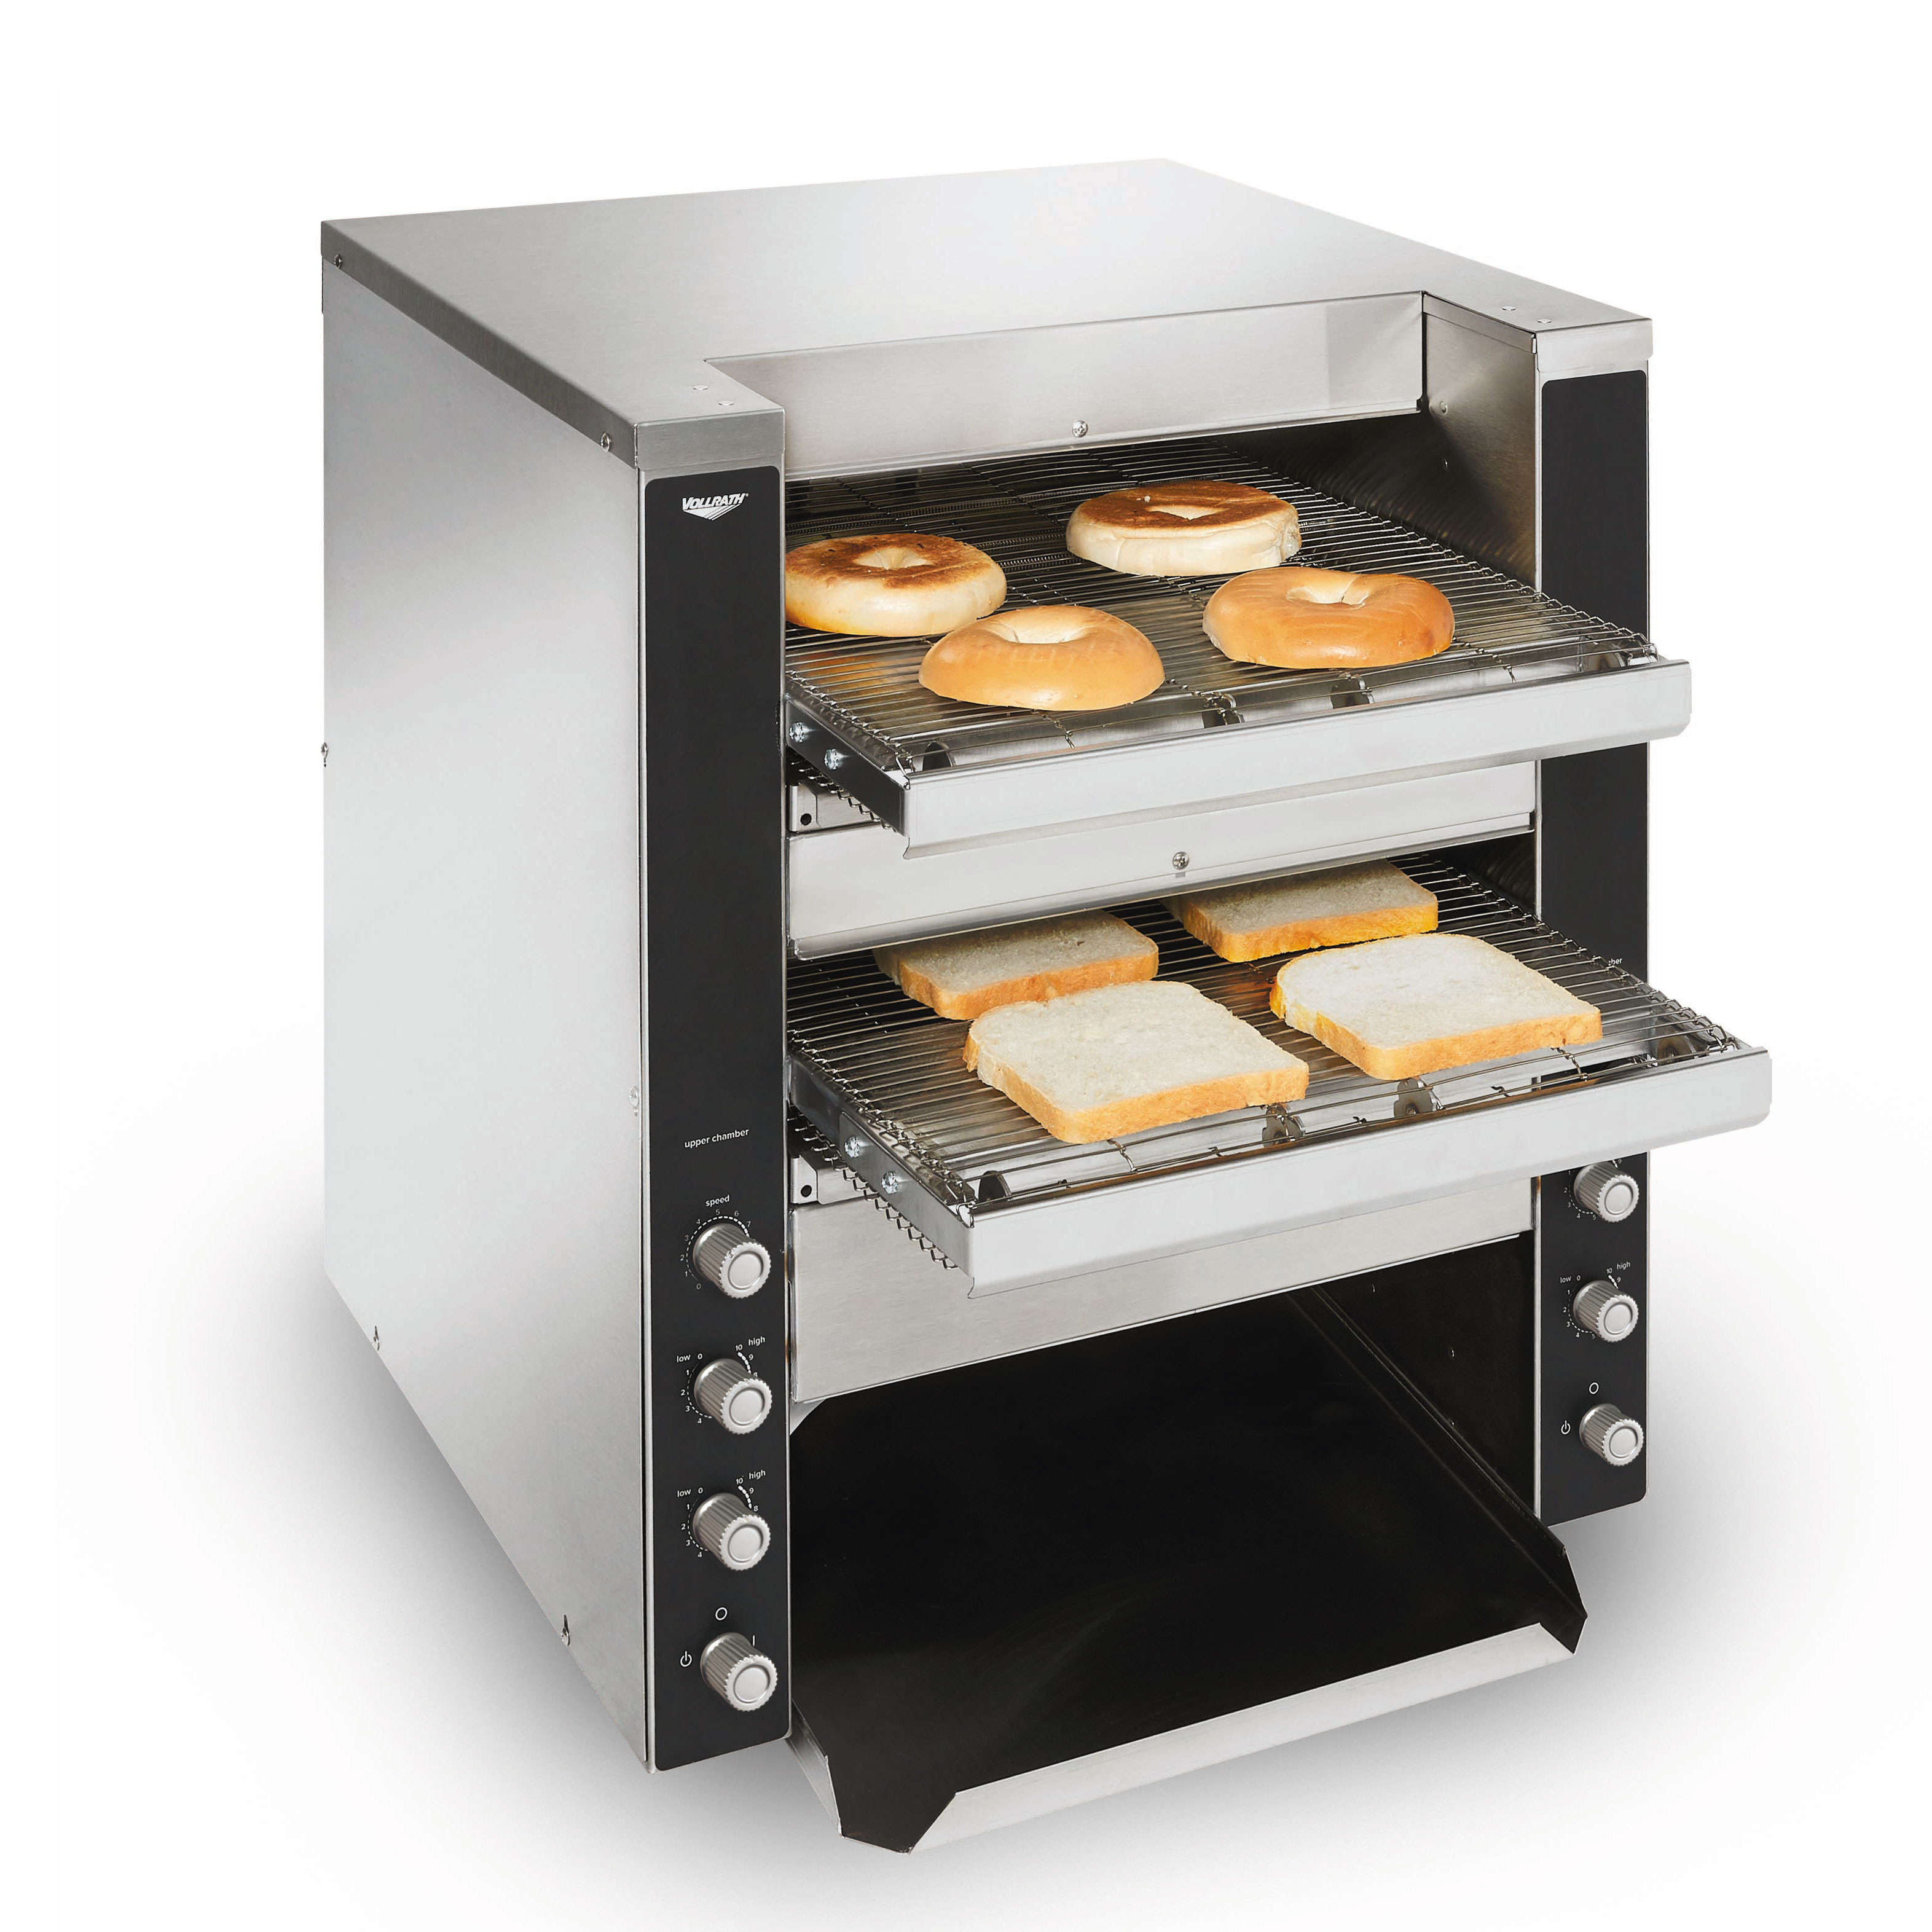 Vollrath CT4-208DUAL toaster, conveyor type